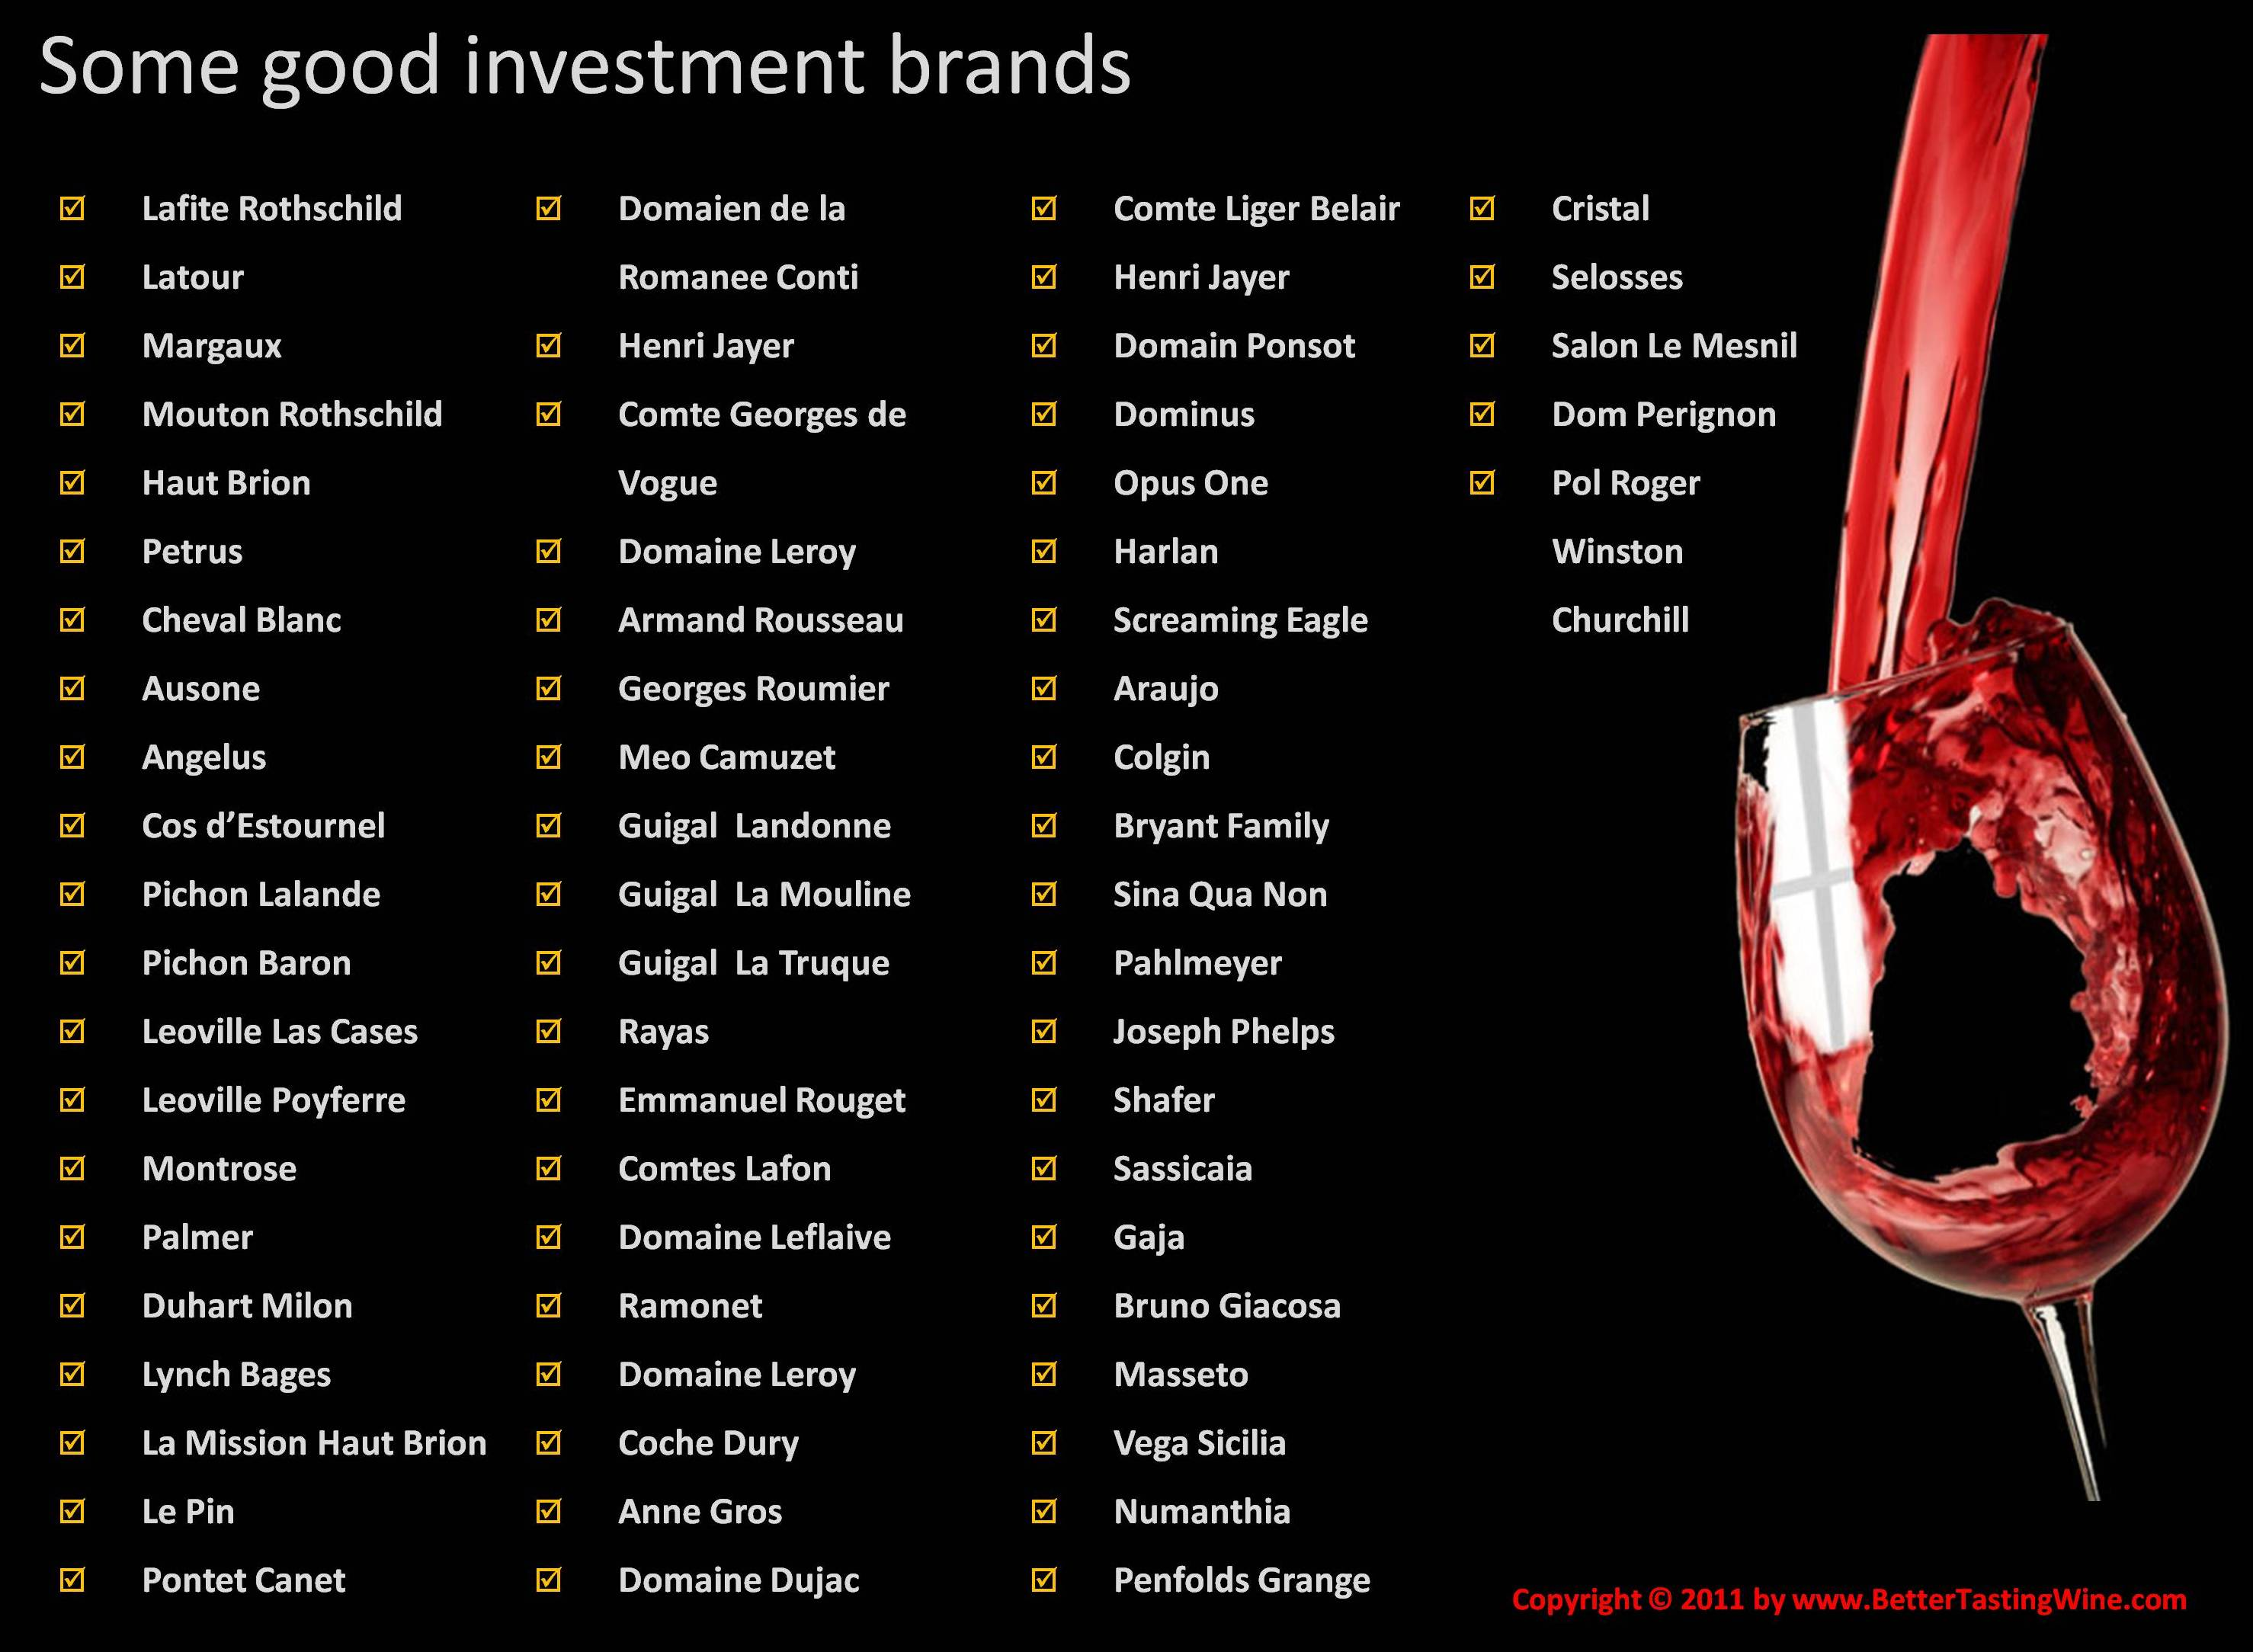 advantages and disadvantages of brand names